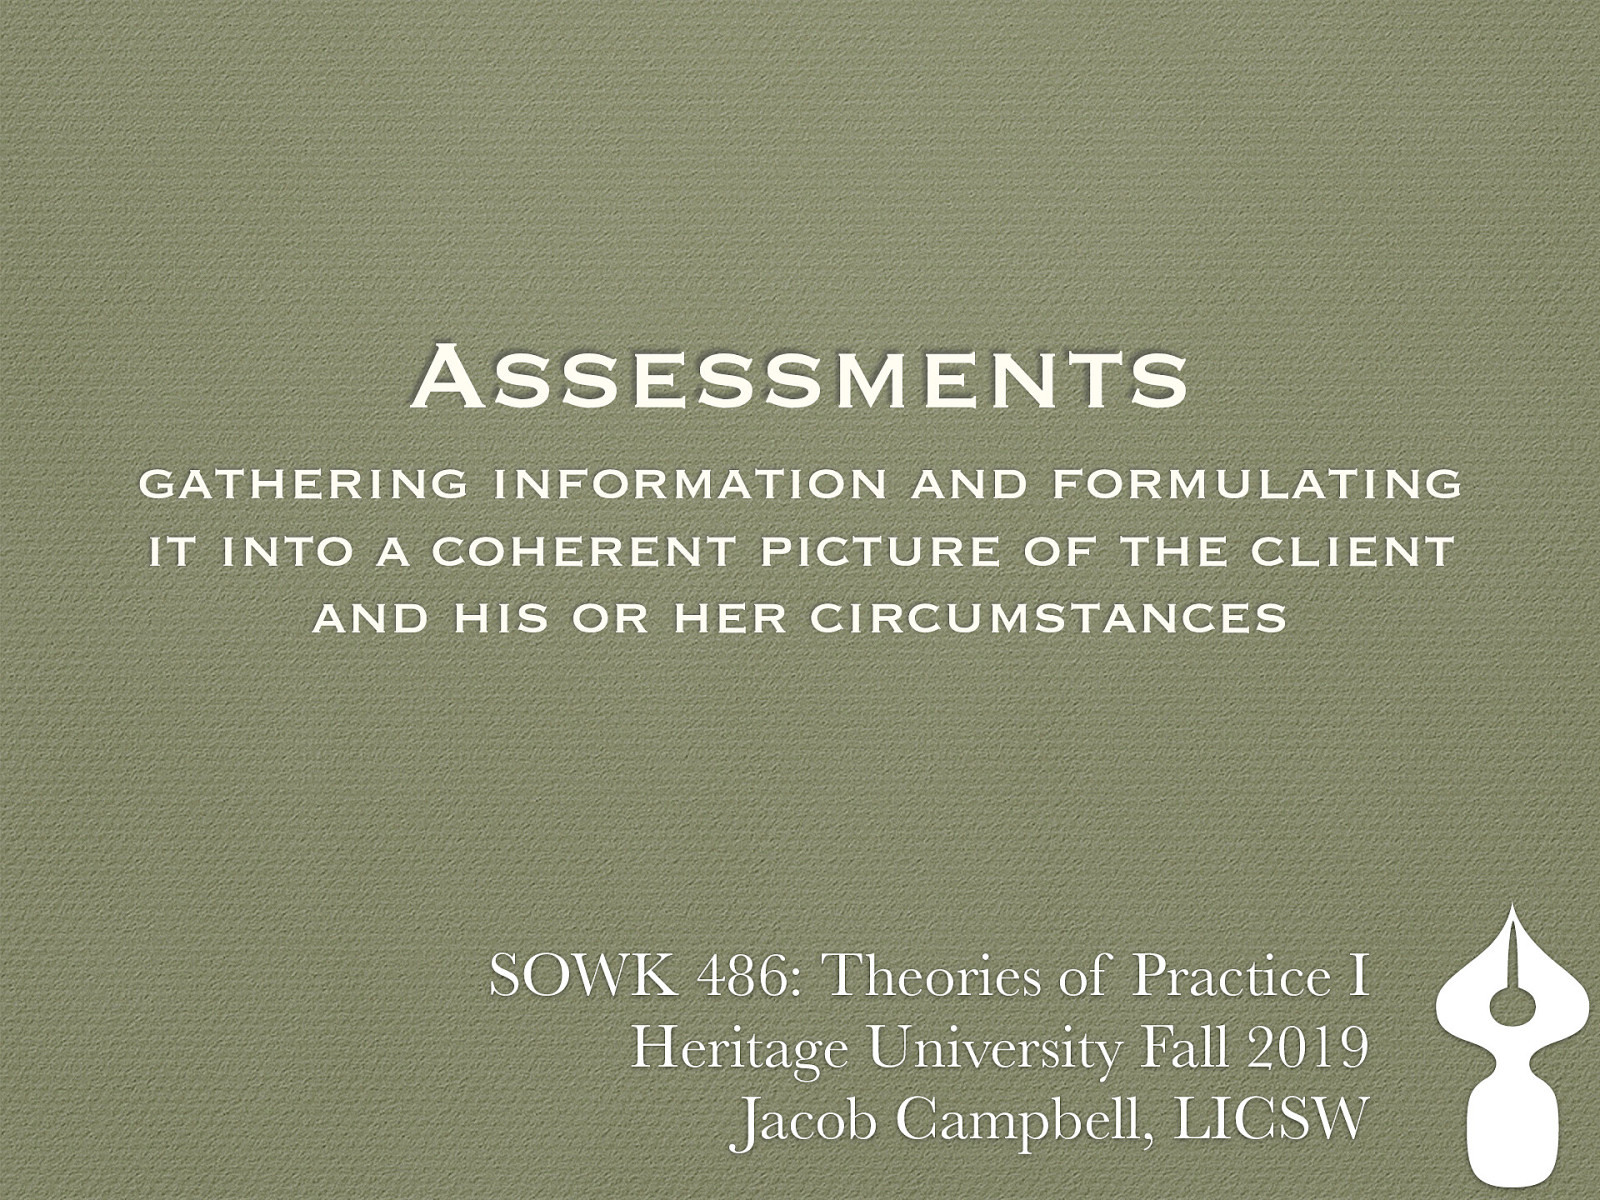 Week 08 - Assessments - Gathering Information and Formulating Understanding of Clients